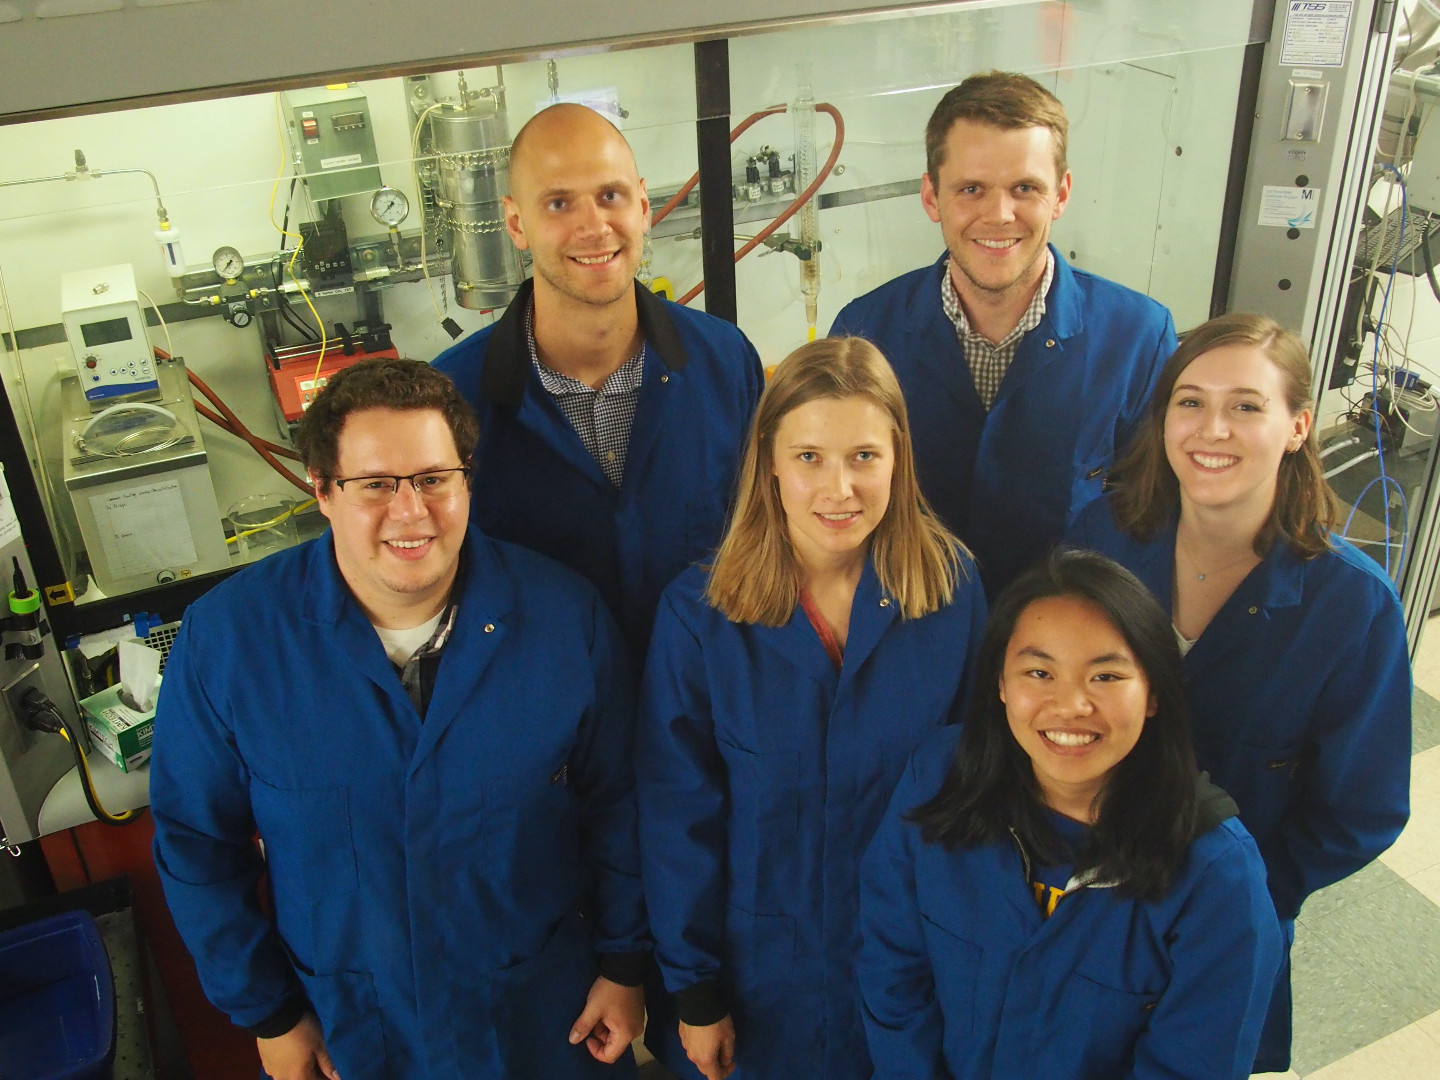 Sironix raises $1.8M to ramp up production of its plant-based, eco-friendly cleaning chemicals